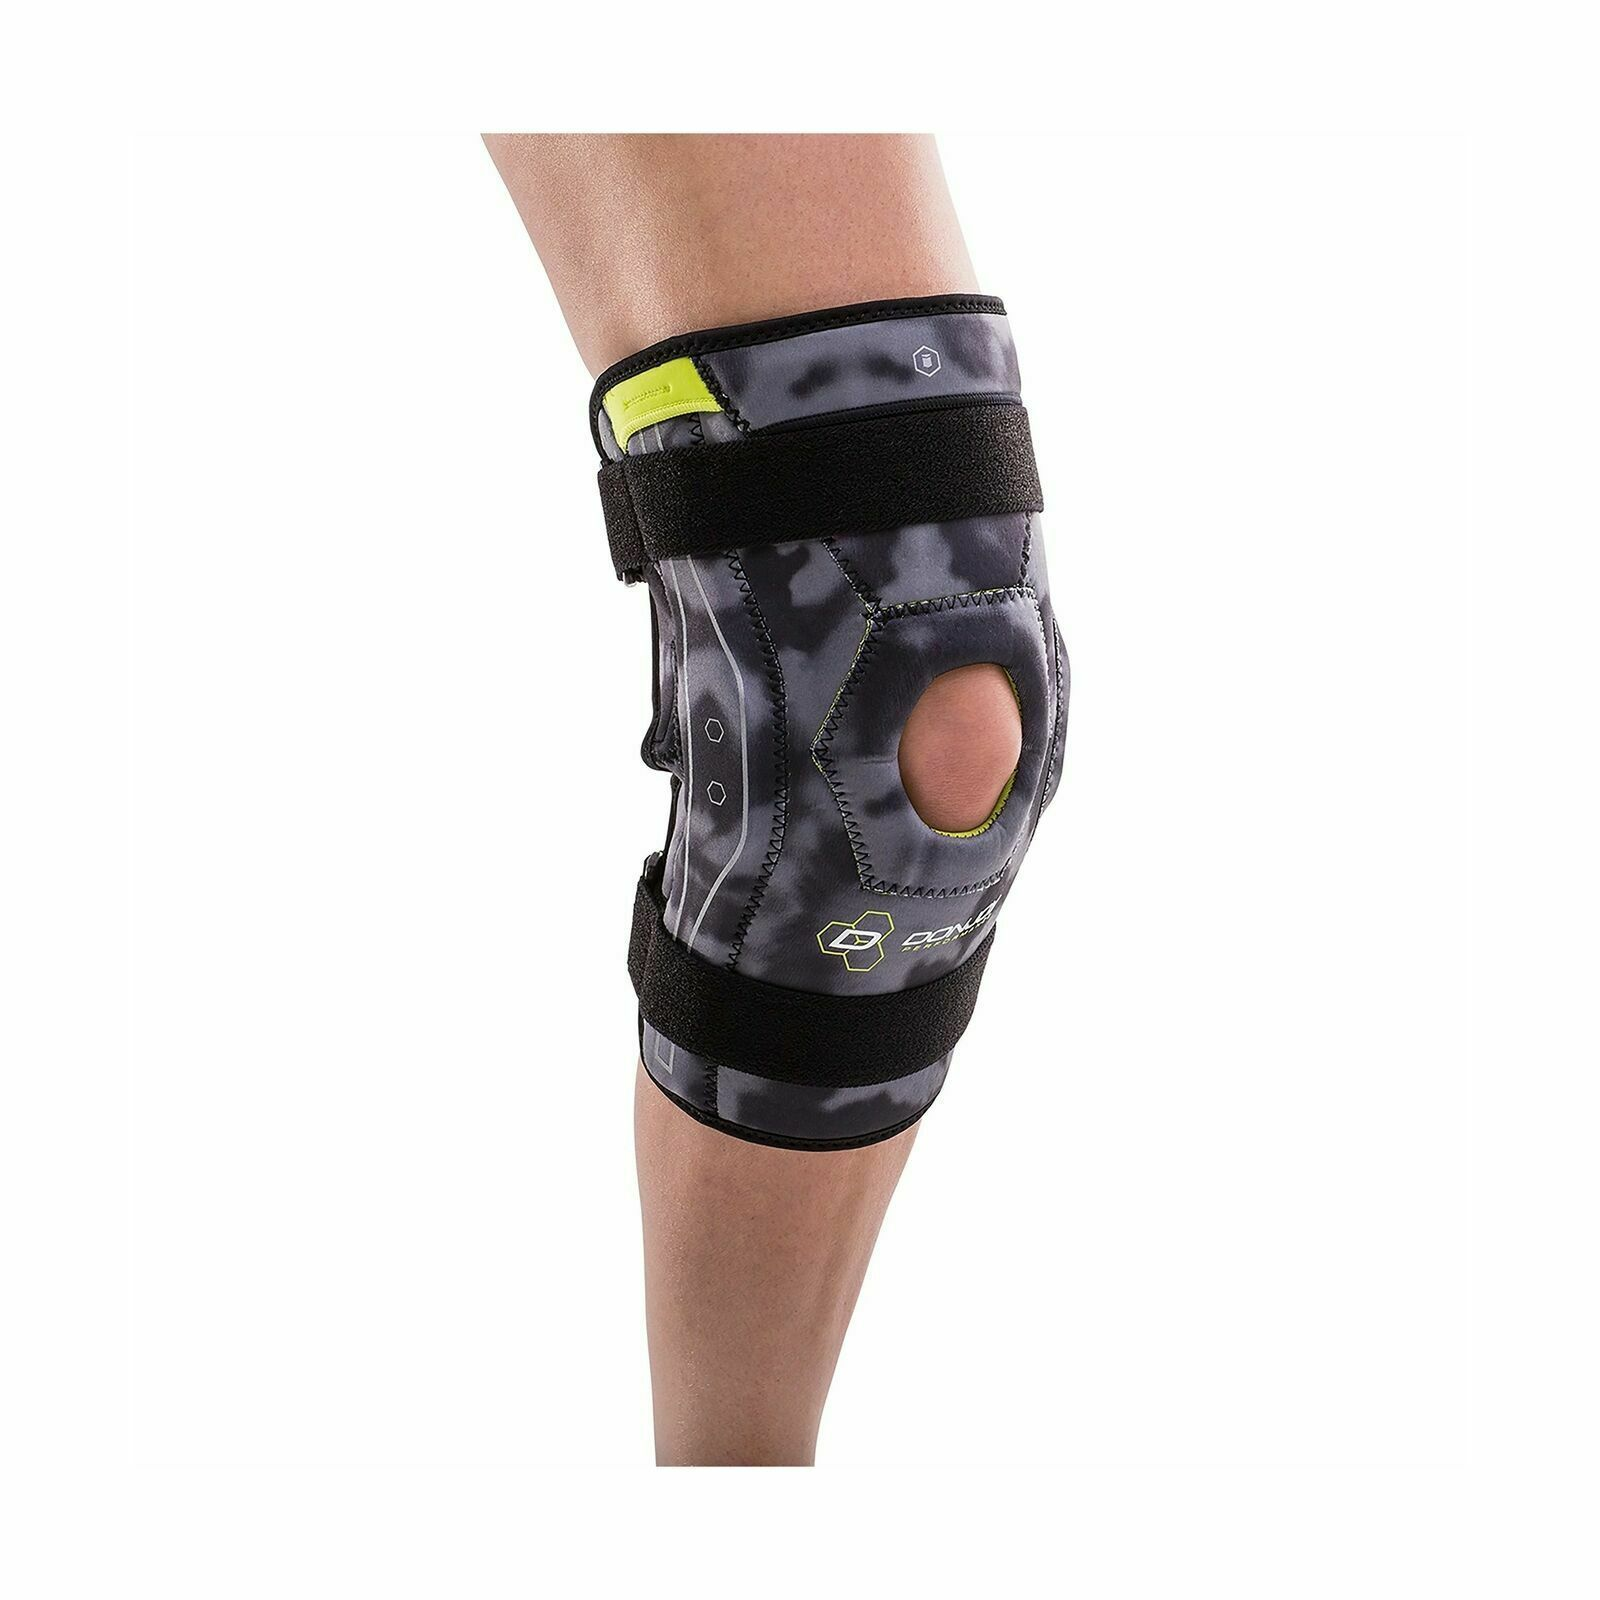 bf47d4d8be DonJoy Performance Bionic Knee Brace – and 17 similar items. 57